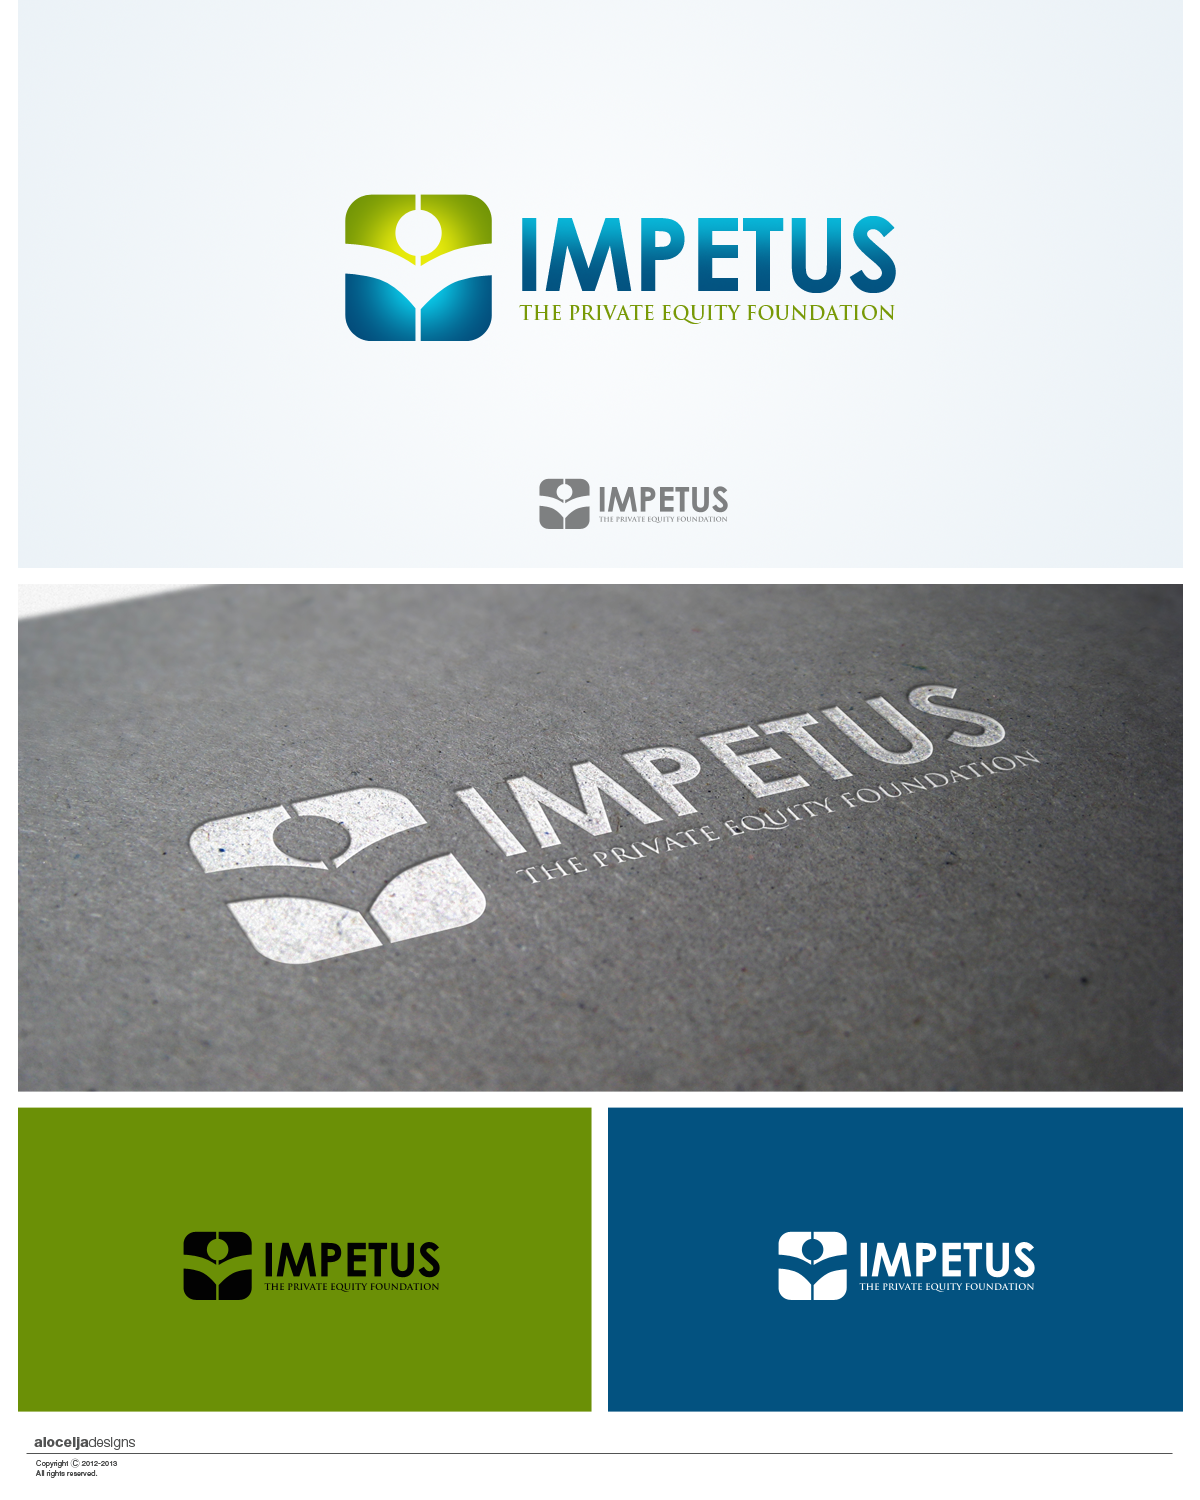 Logo Design by alocelja - Entry No. 32 in the Logo Design Contest New Logo Design for Impetus - The Private Equity Foundation.